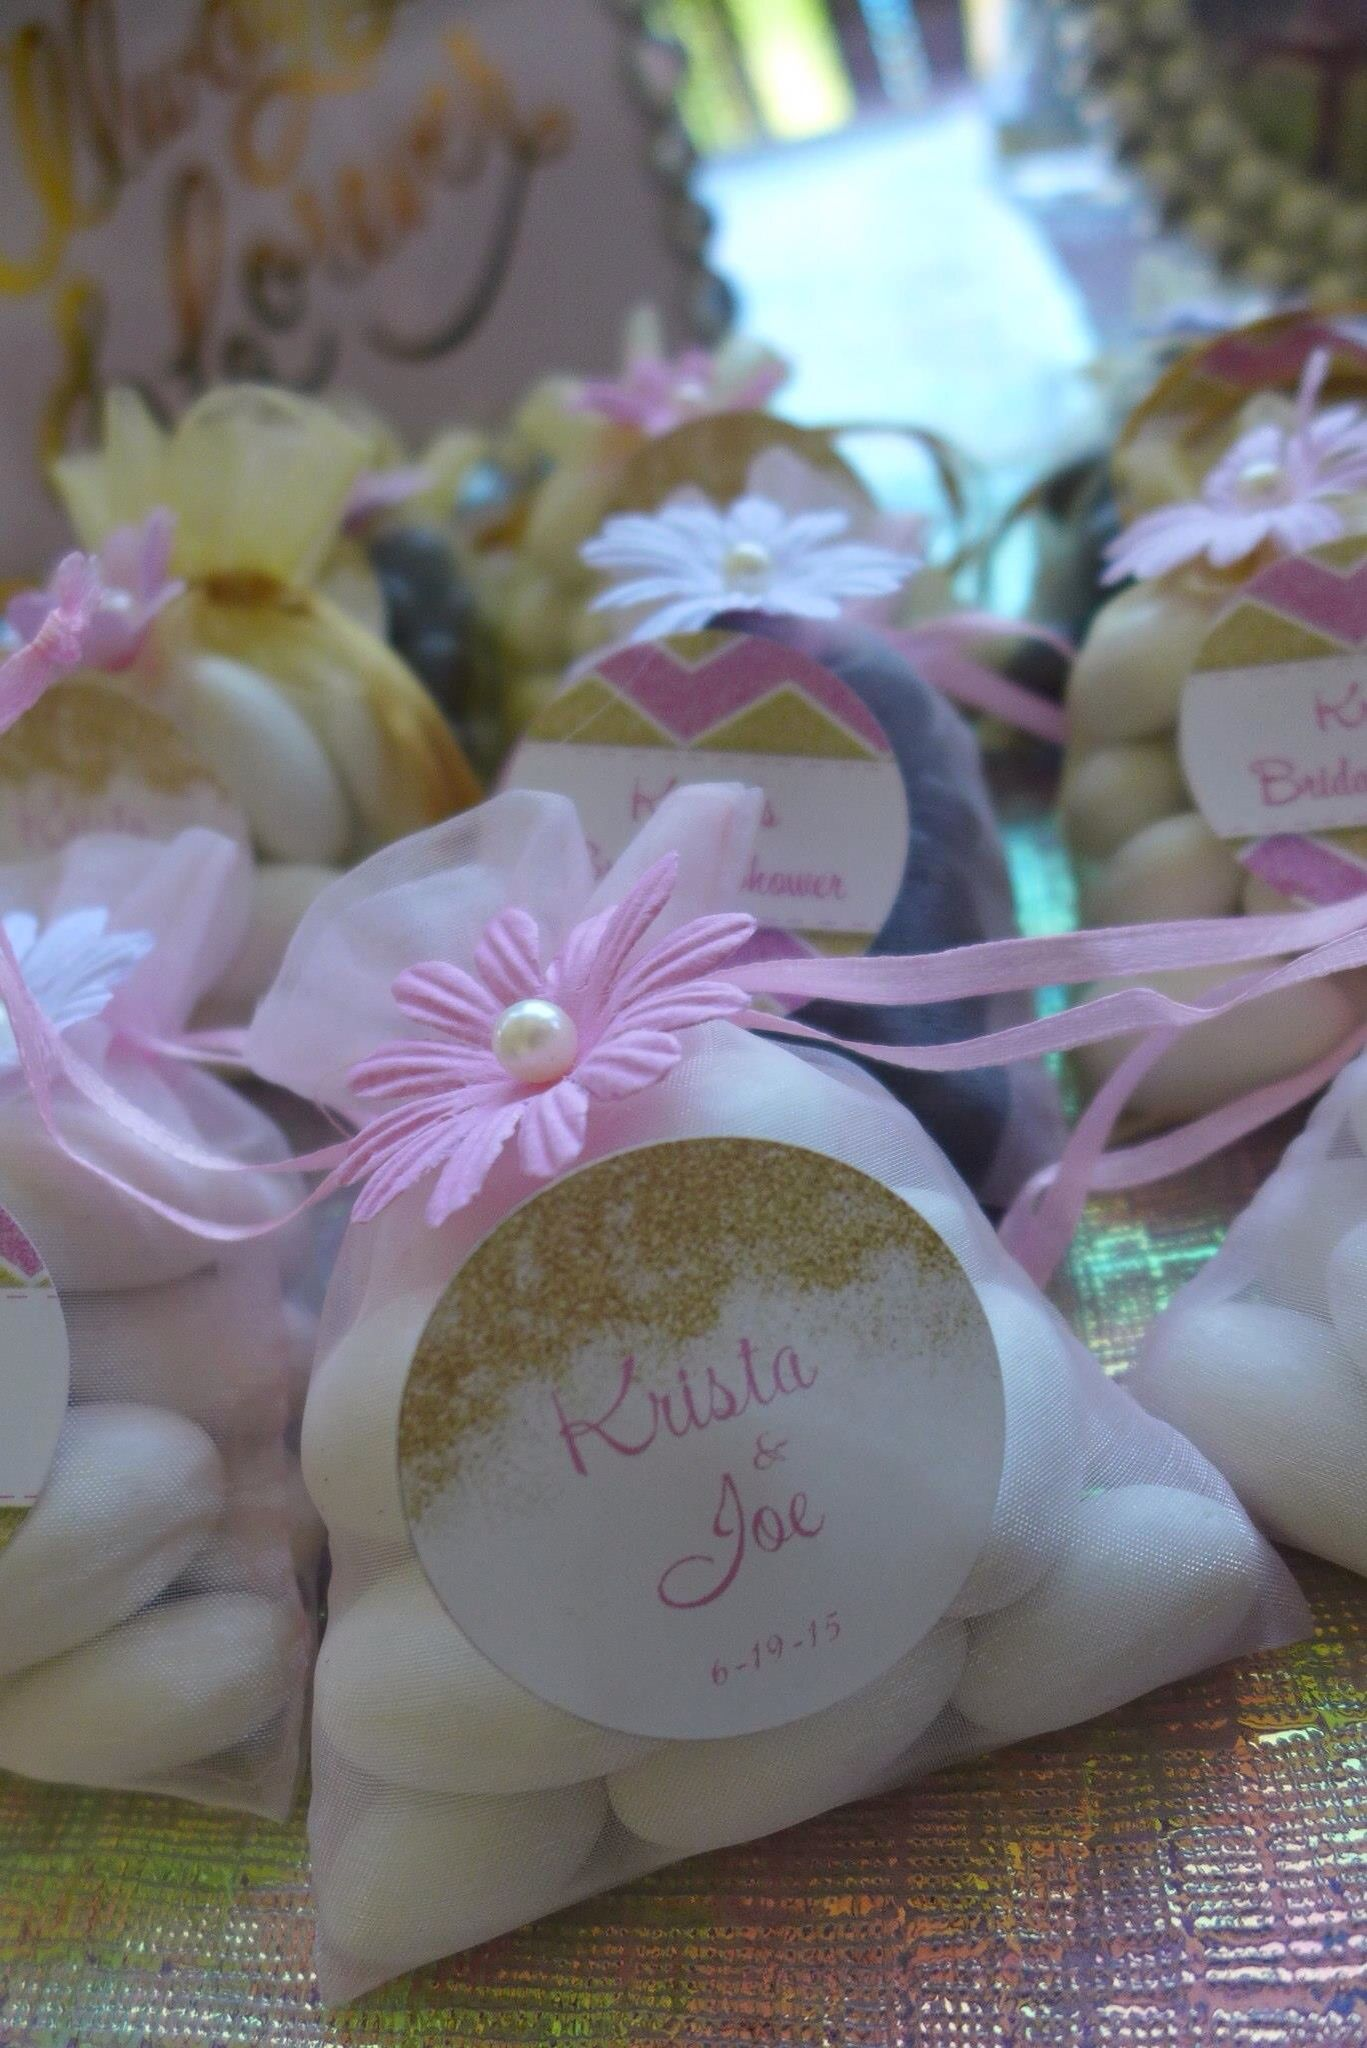 Bridal Shower Favors Organza Bags Filled With Jordan Almonds Or Dark Chocolate Cans Customized